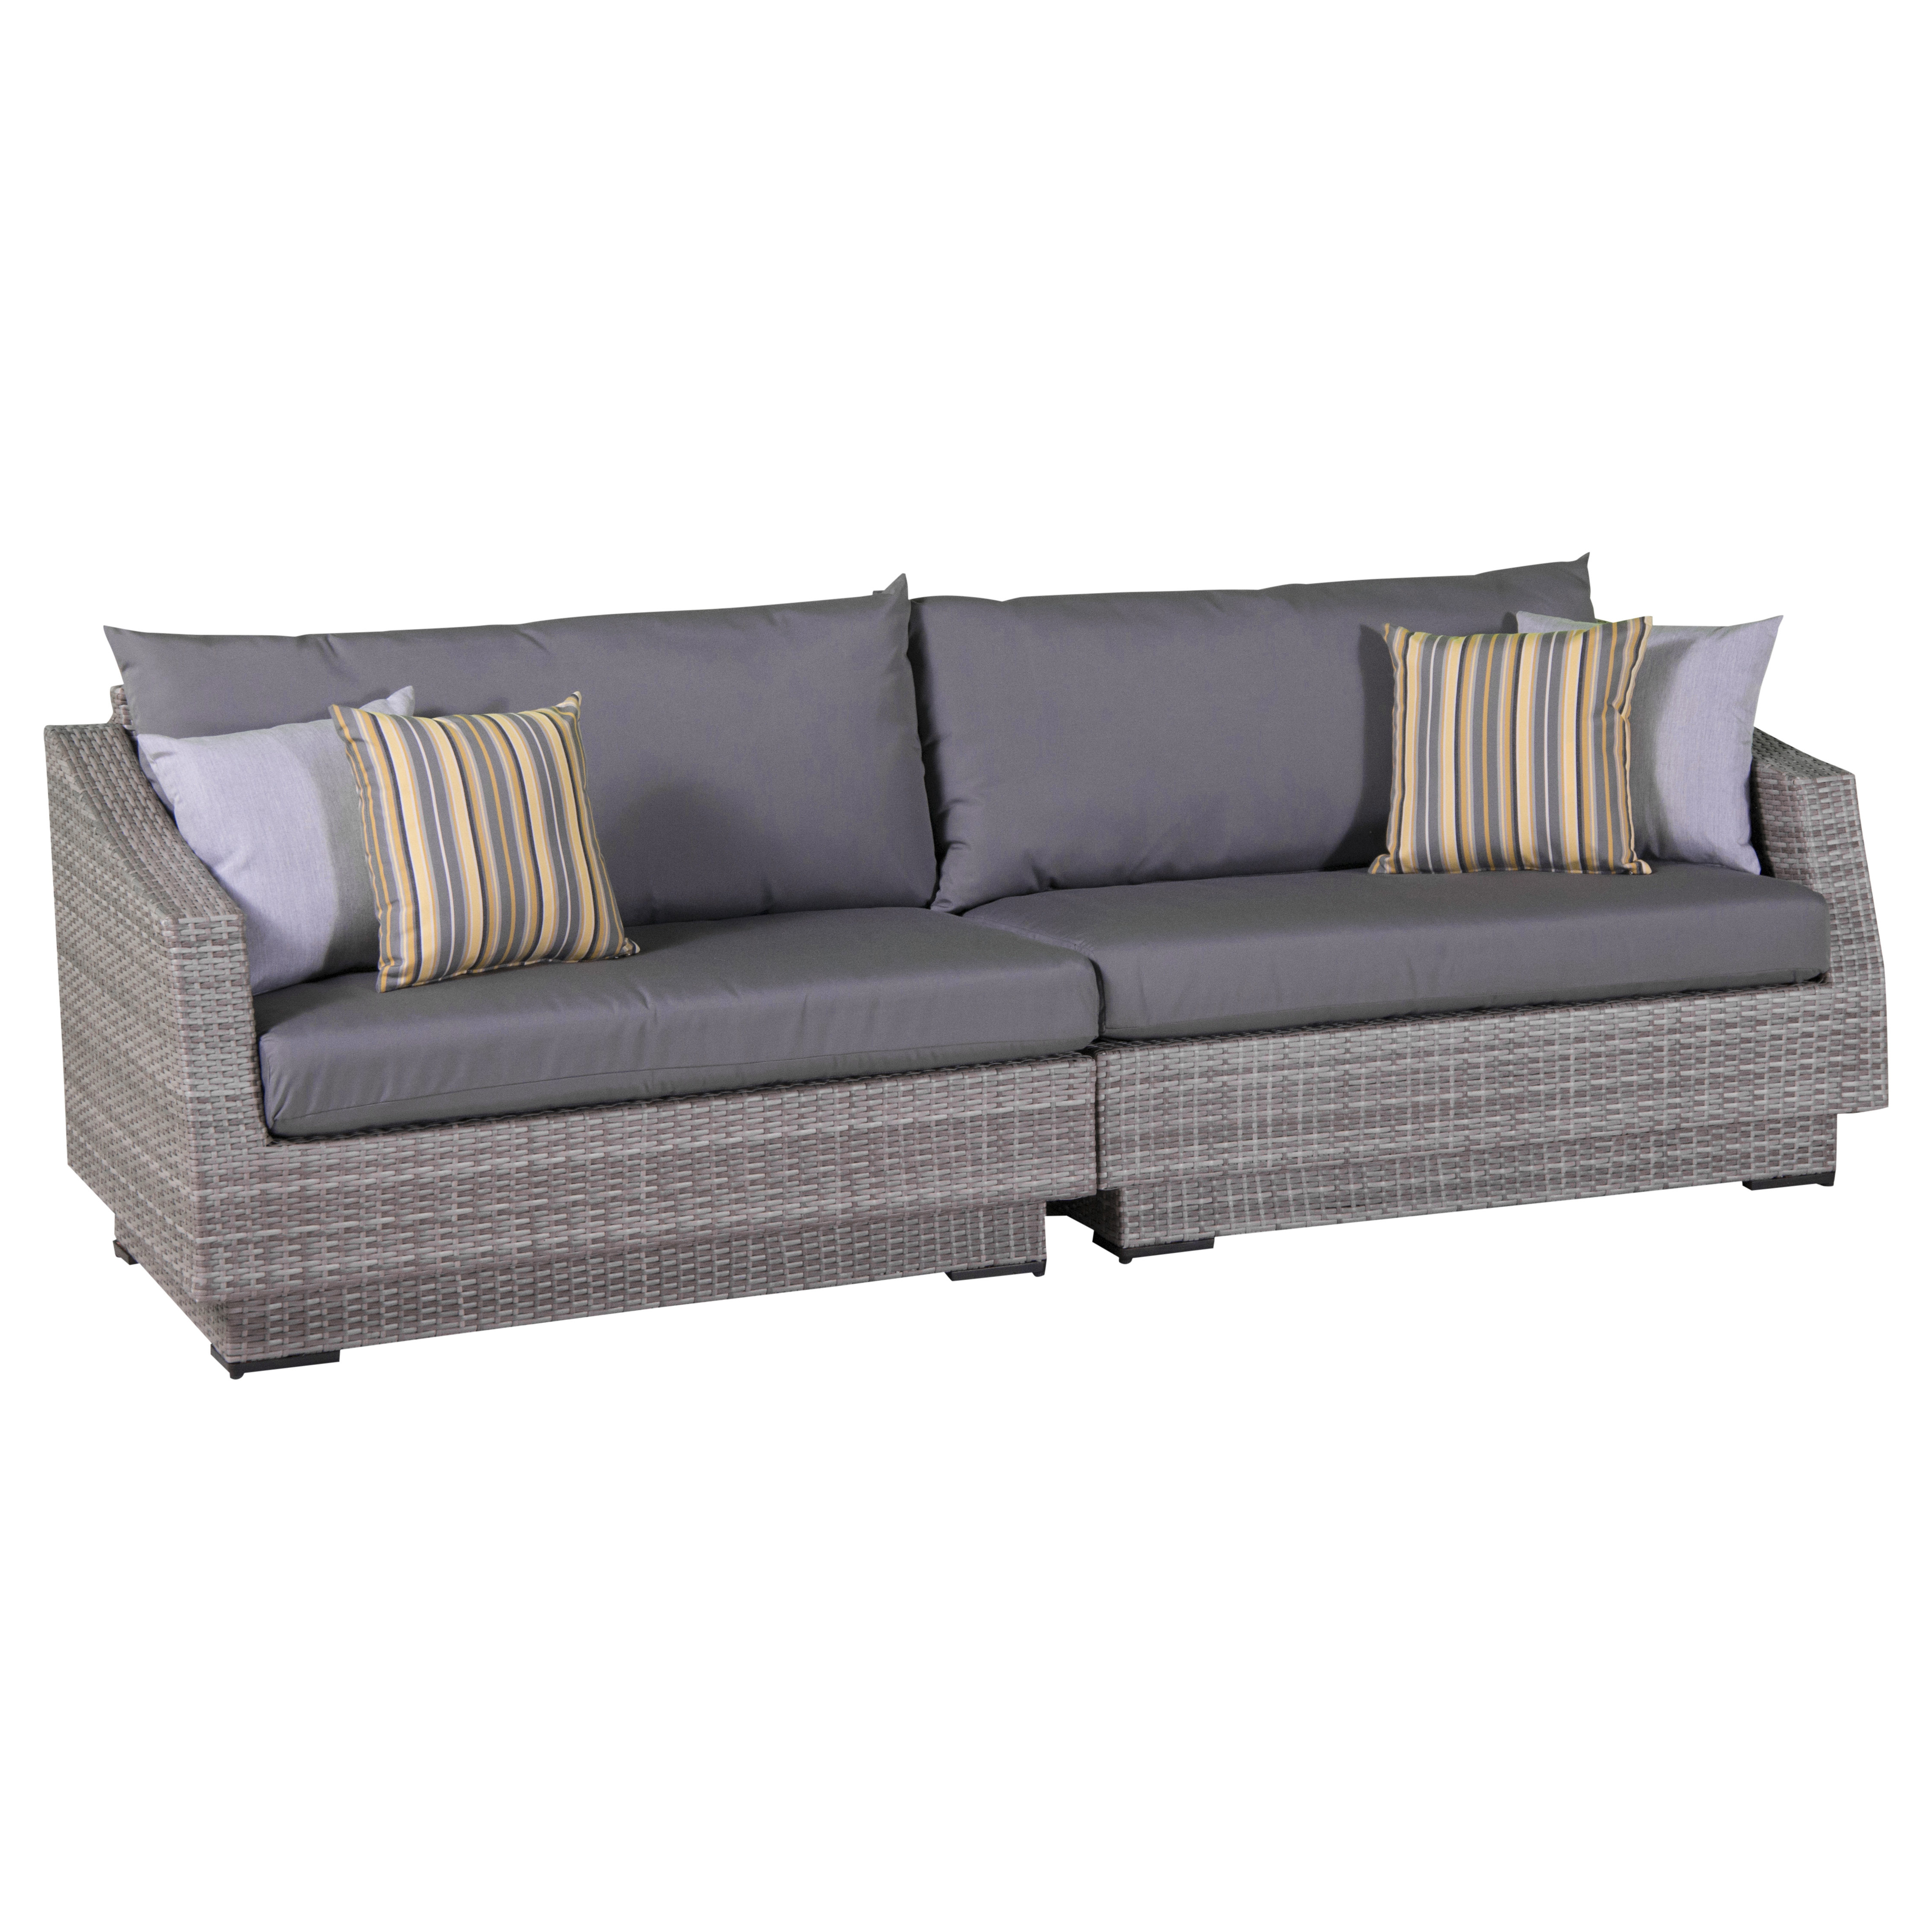 Current Castelli Patio Sofas With Sunbrella Cushions Intended For Castelli Sofa With Sunbrella Cushions (View 11 of 20)